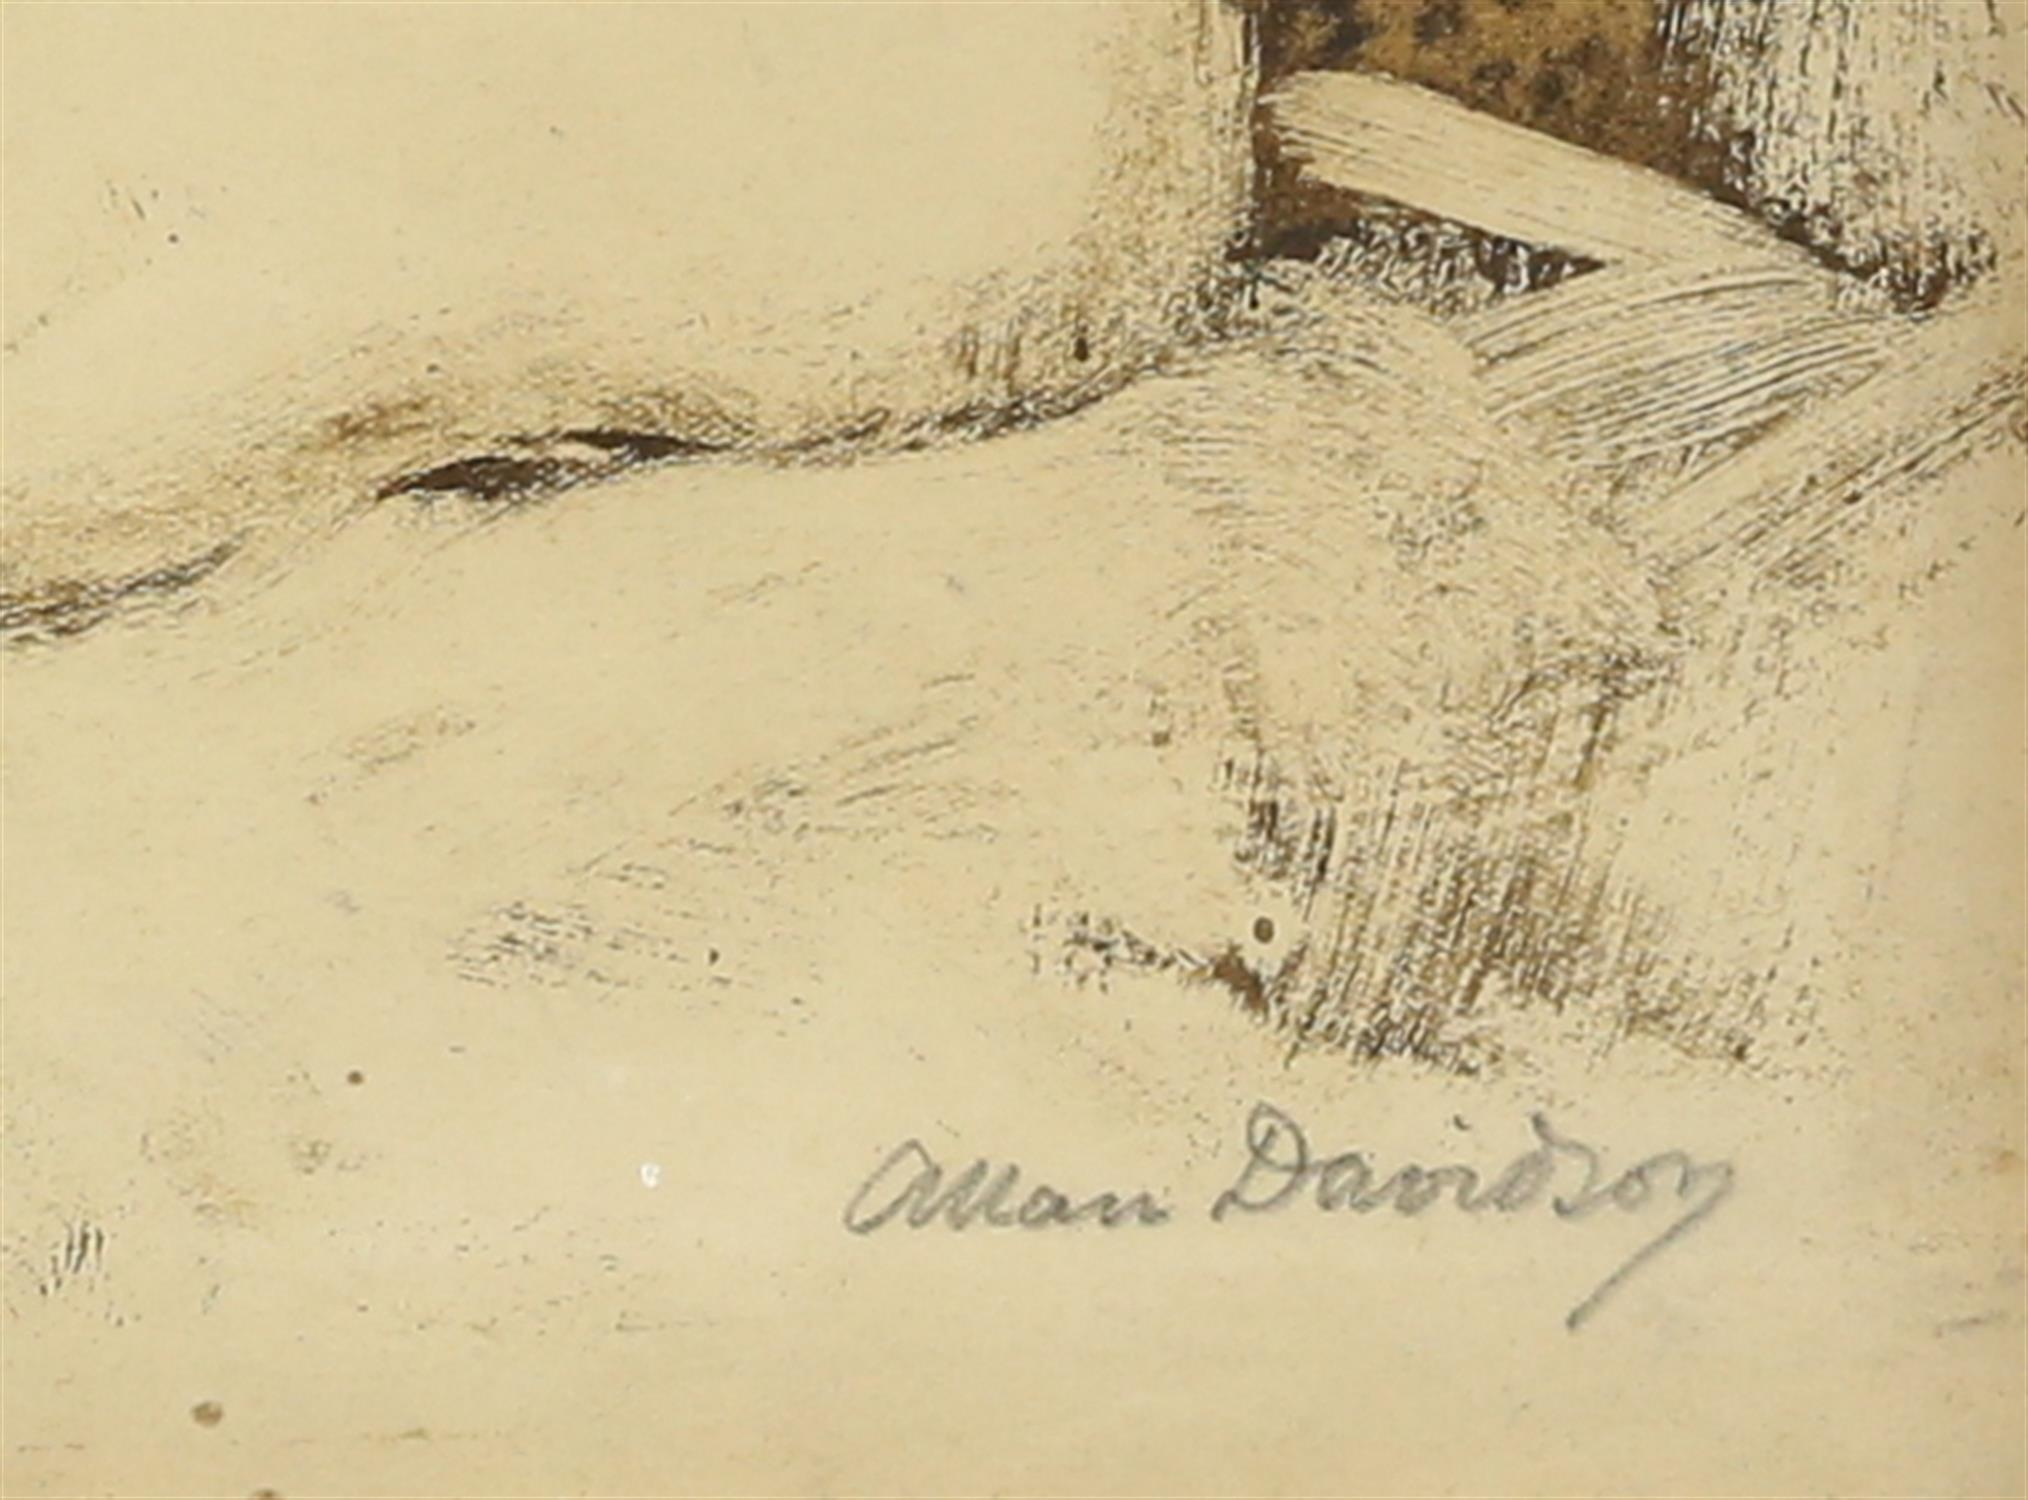 Allan Davidson (British, 1873-1932), seated nude, signed, oil on paper, 22cm x 16.5cm, - Image 3 of 4